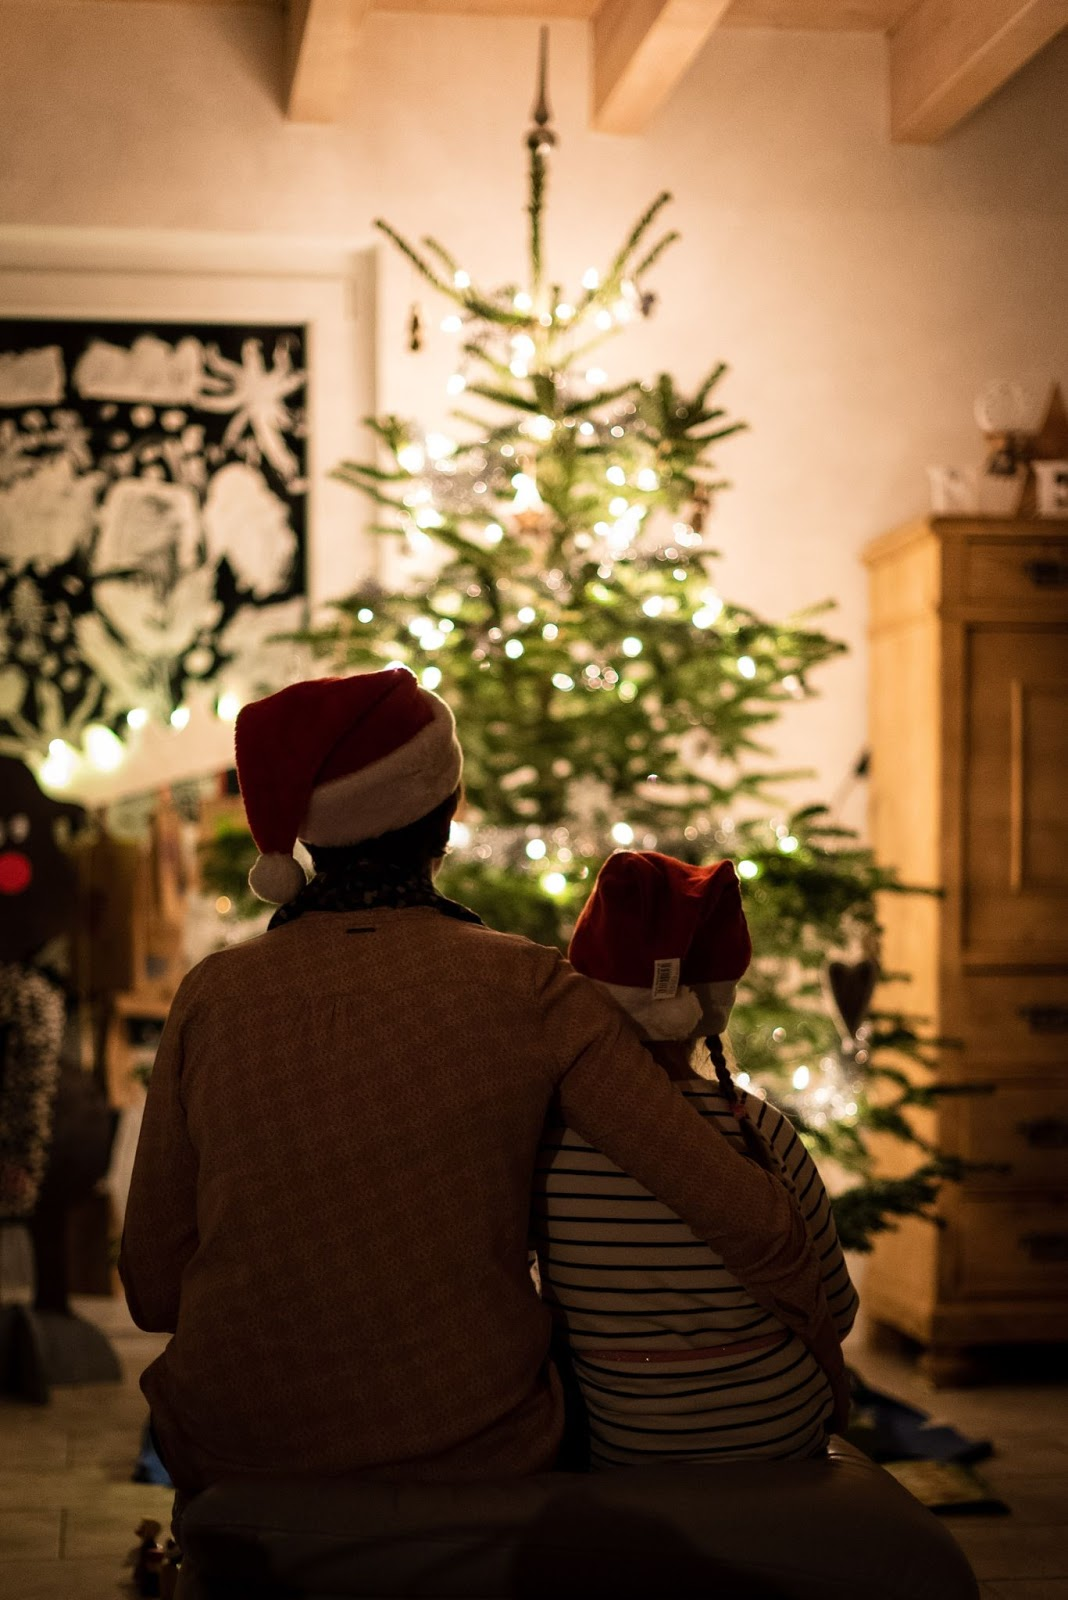 an adult and a child looking at a Christmas tree